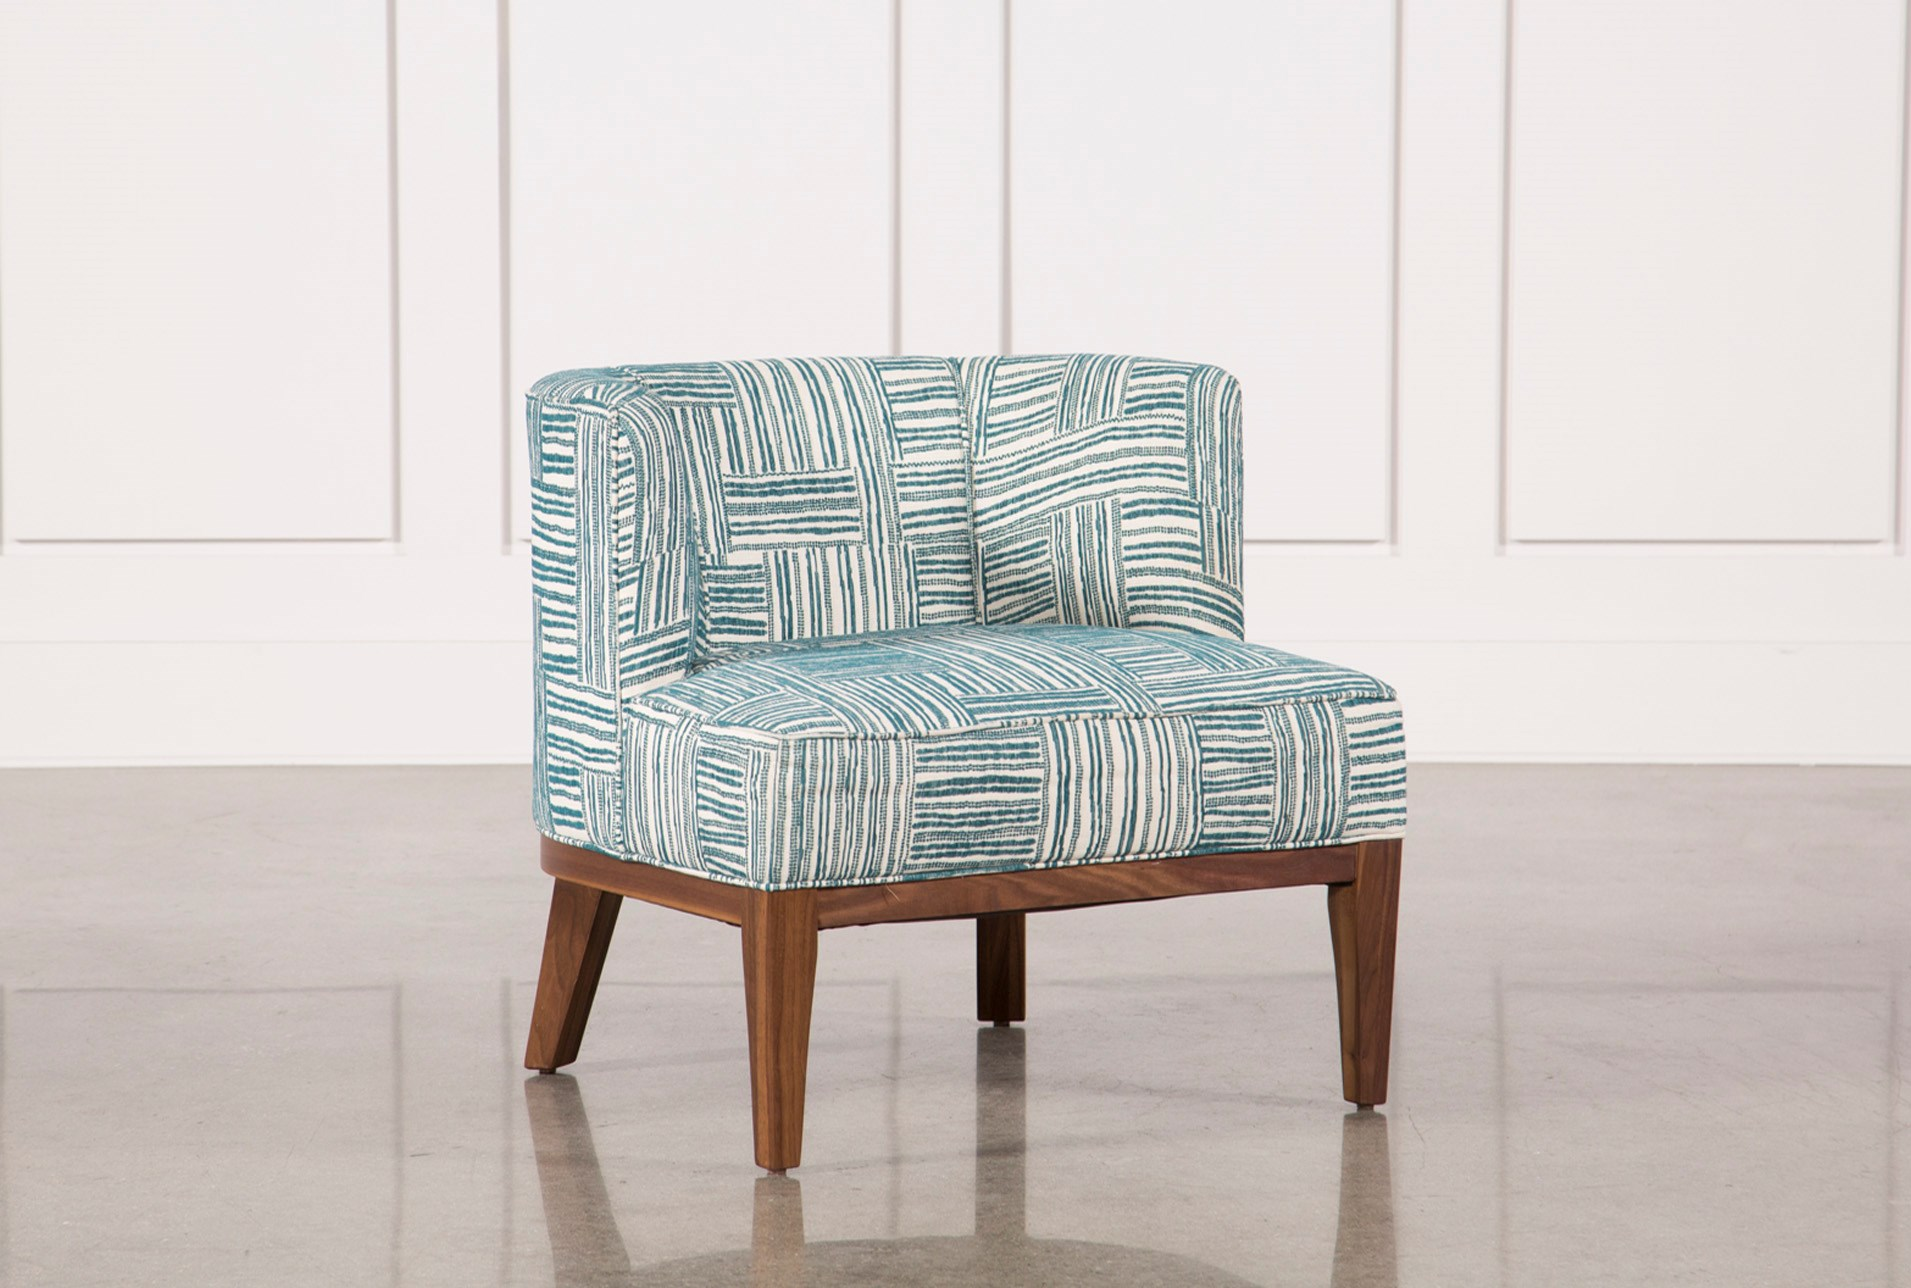 Shae Designs Patio Furniture shae designs patio furniture cleaning outdoor furniture home cleaning how tos for carpets pictures Added To Cart Justina Blakeney Shae Accent Chair